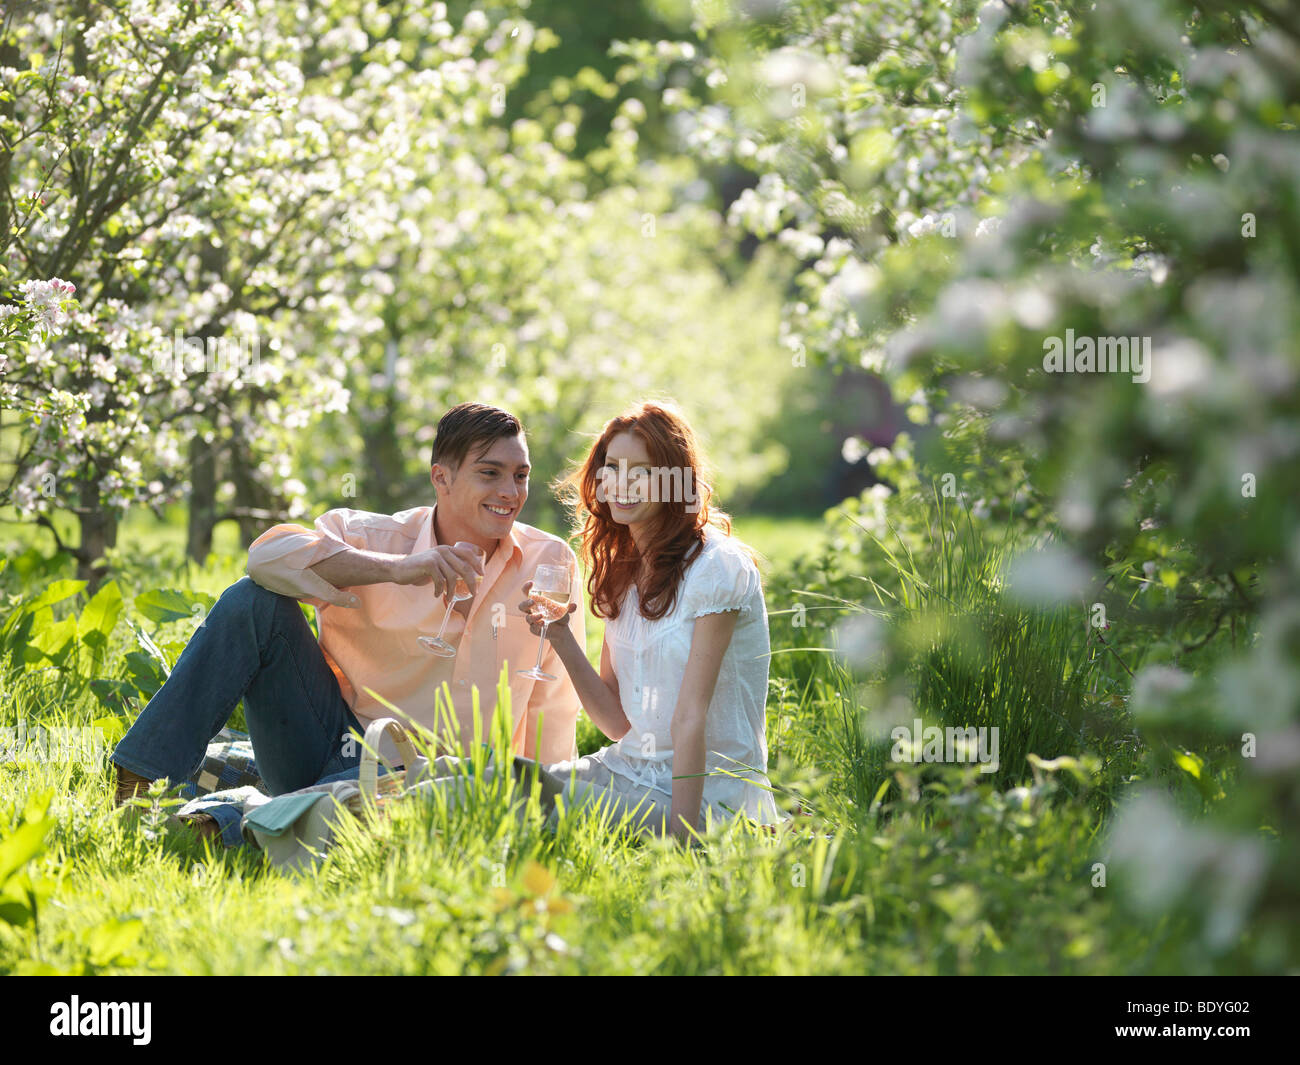 Couple Having Picnic In Orchard - Stock Image